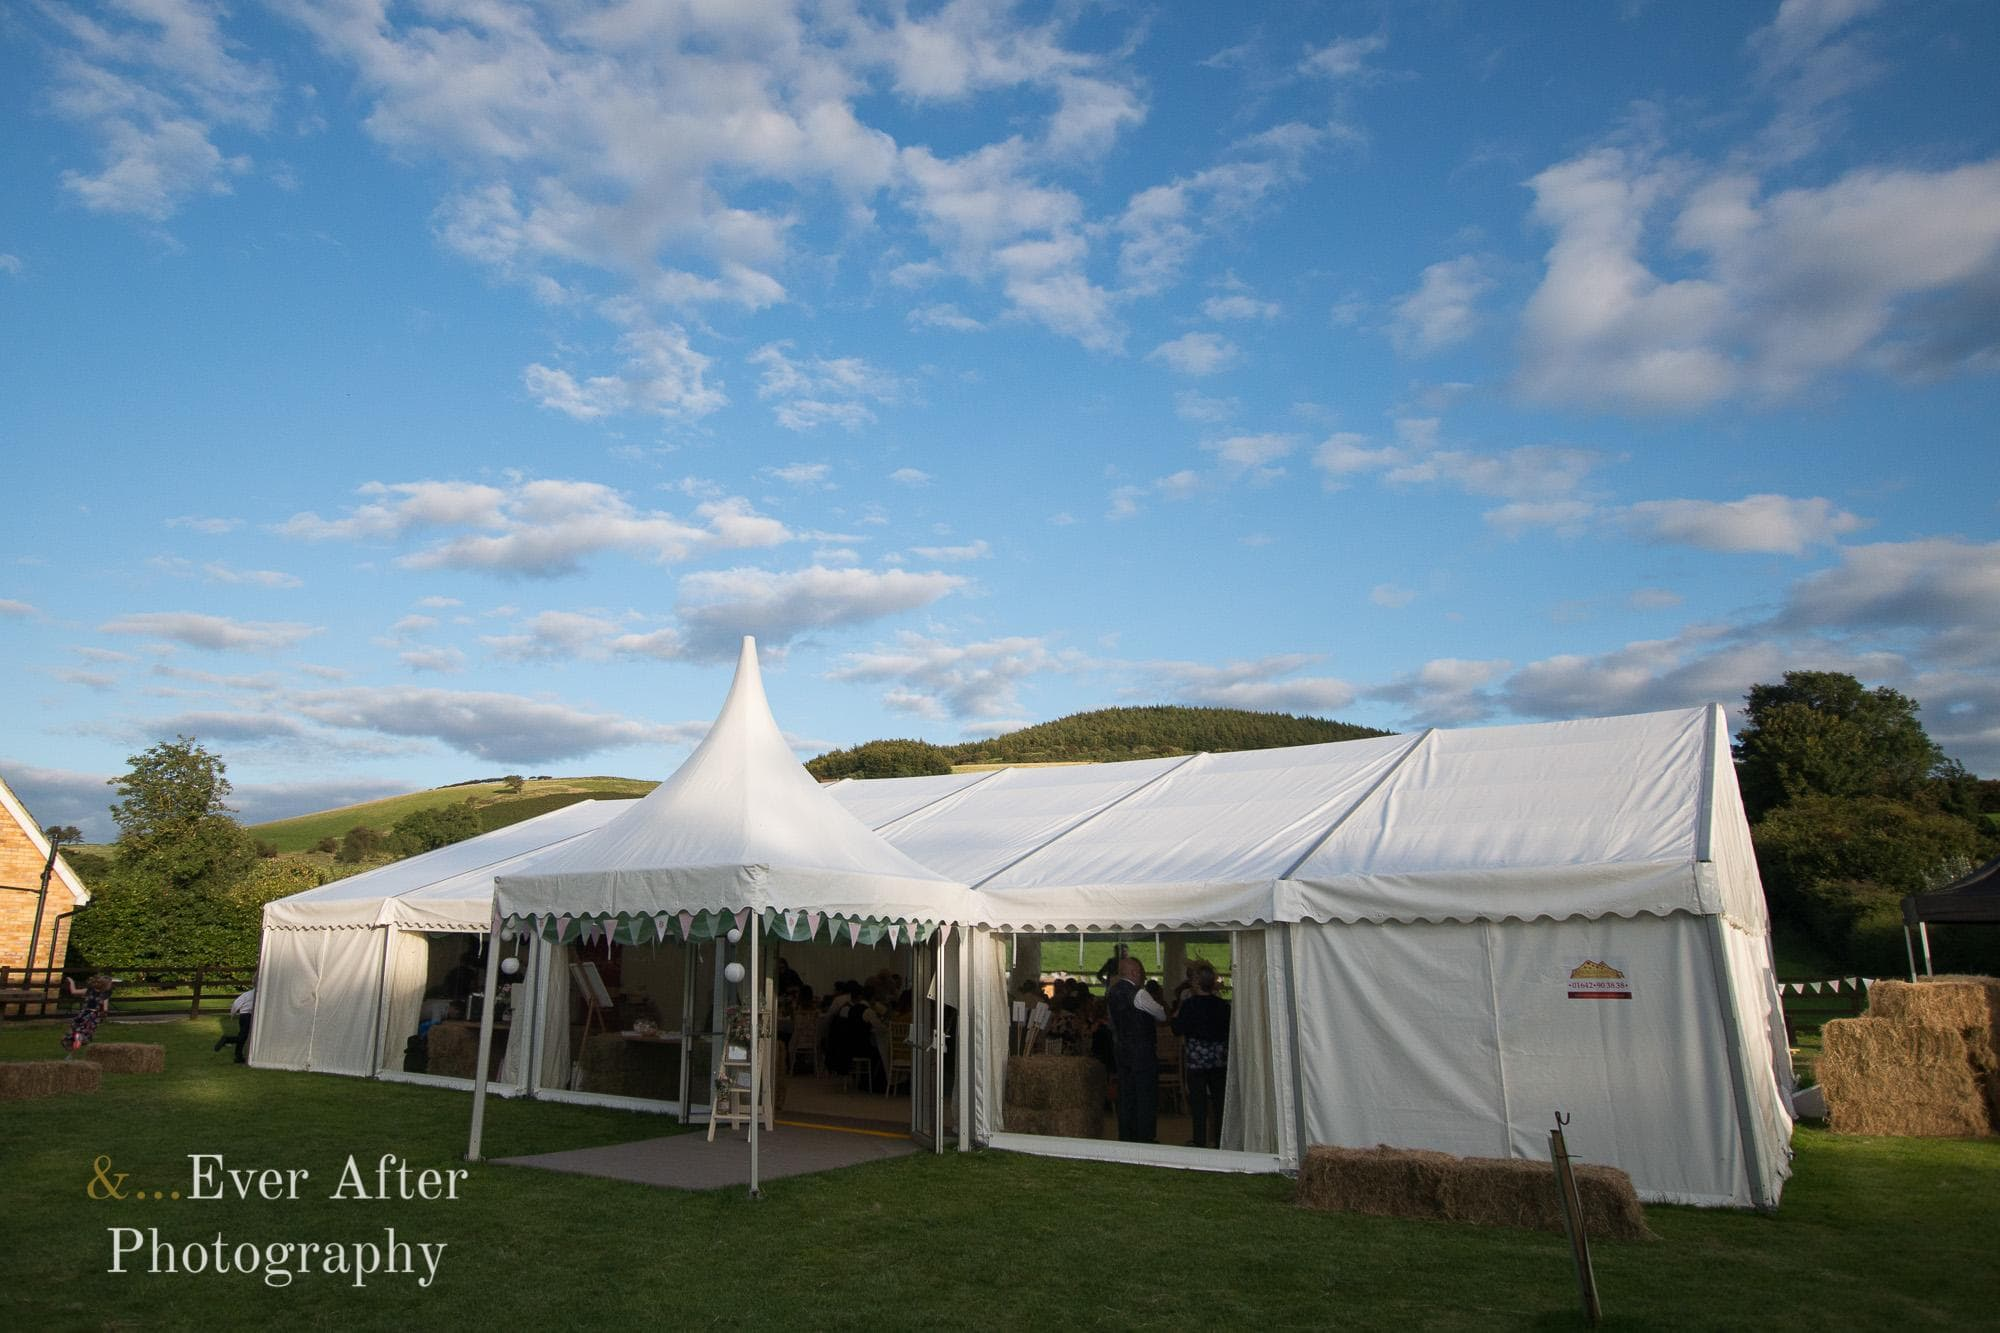 Wedding venue, marquee, and ever after photography, north yorkshire wedding photographer, wedding day